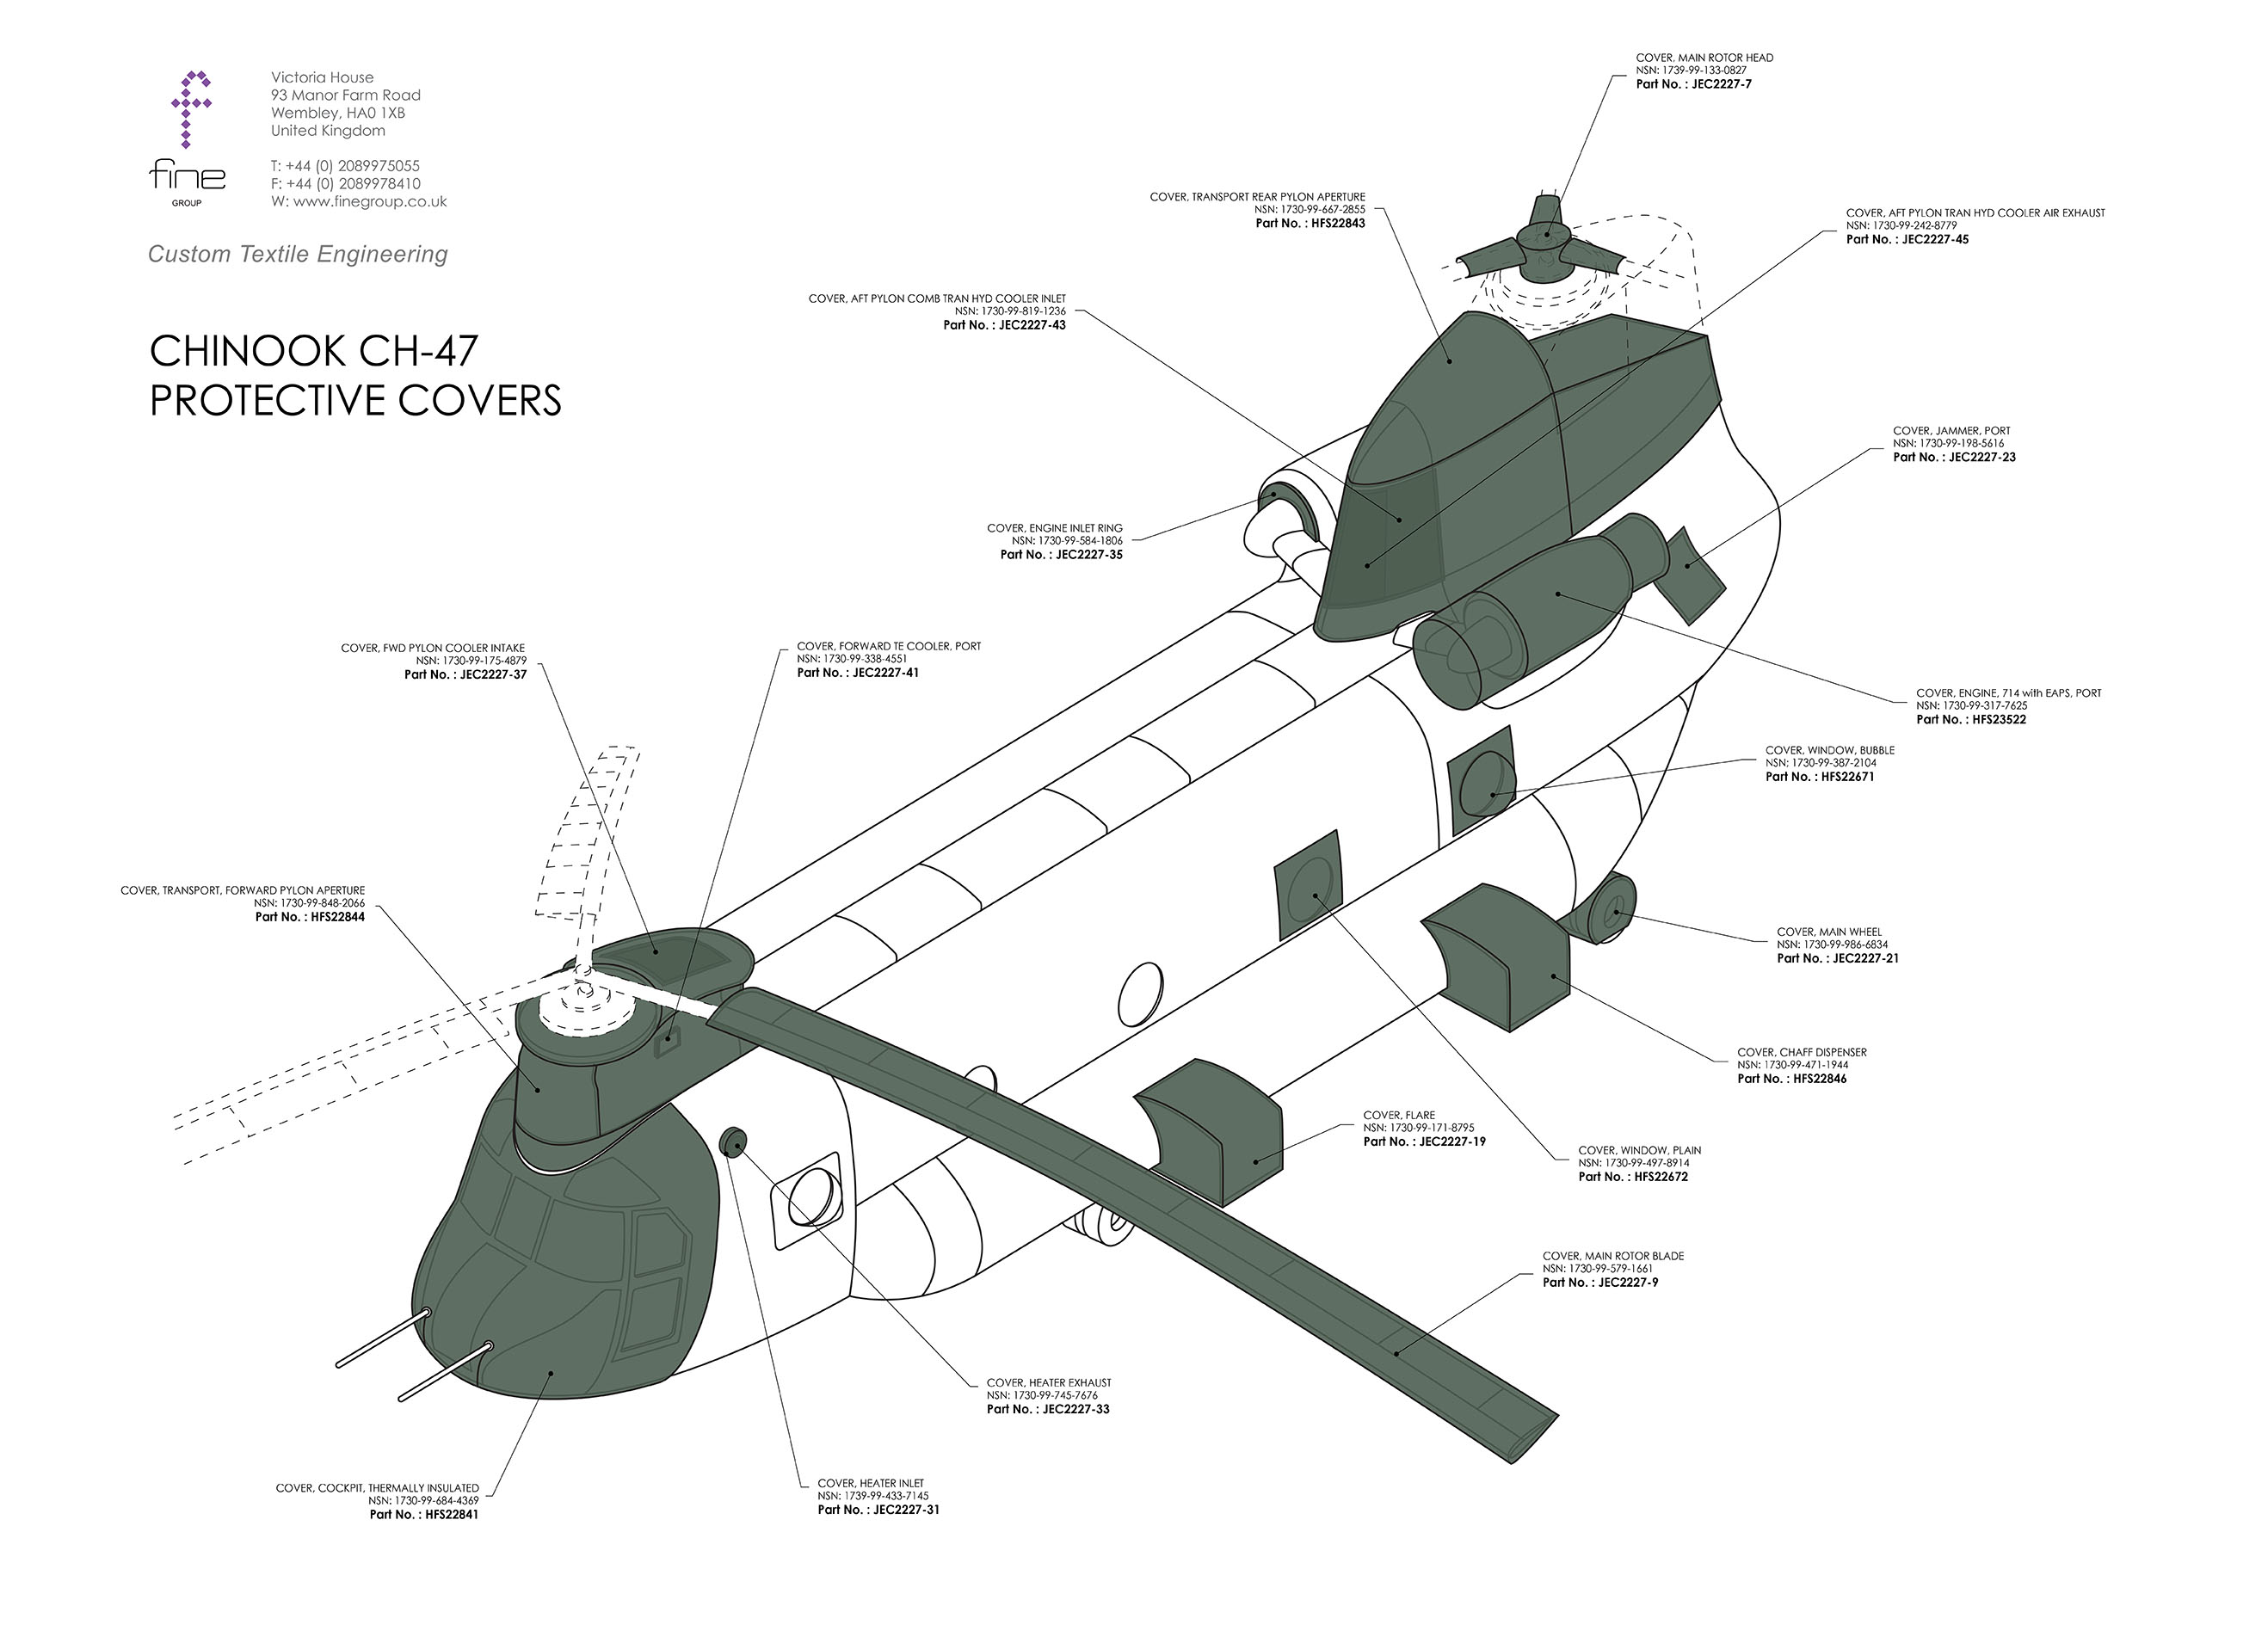 An illustration of a helicopter highlighting the motor and rotor blades